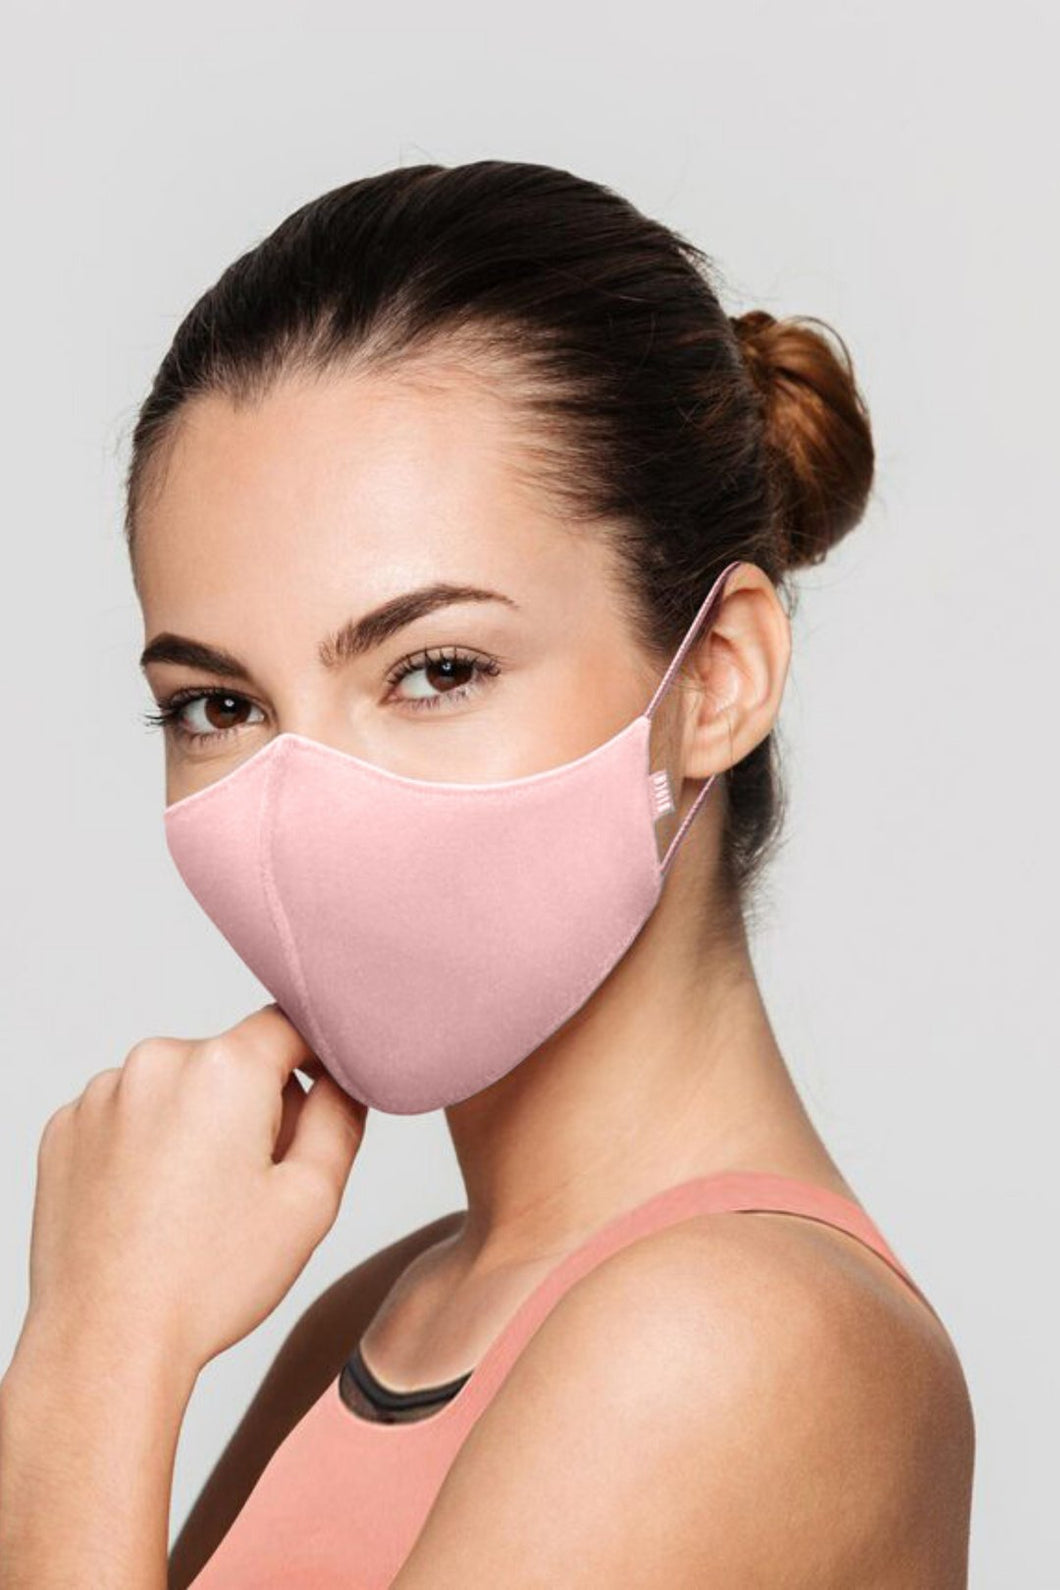 Ballet dress code face masks with Lanyard